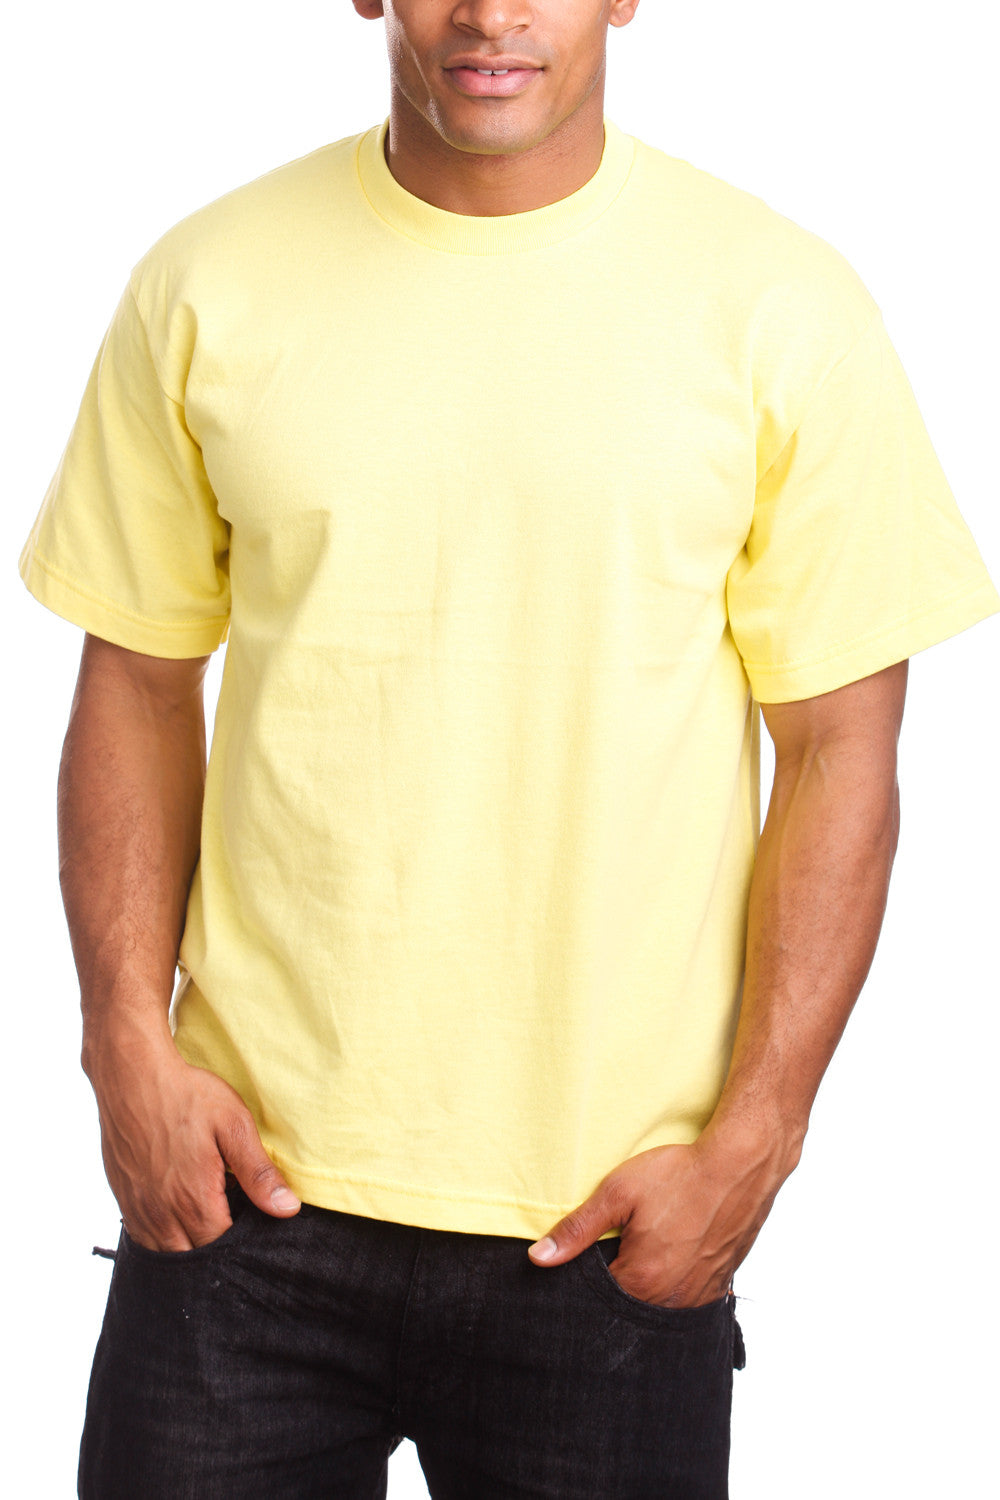 Mens Super Heavy T-Shirt Tee Shirts Tall Size Yellow